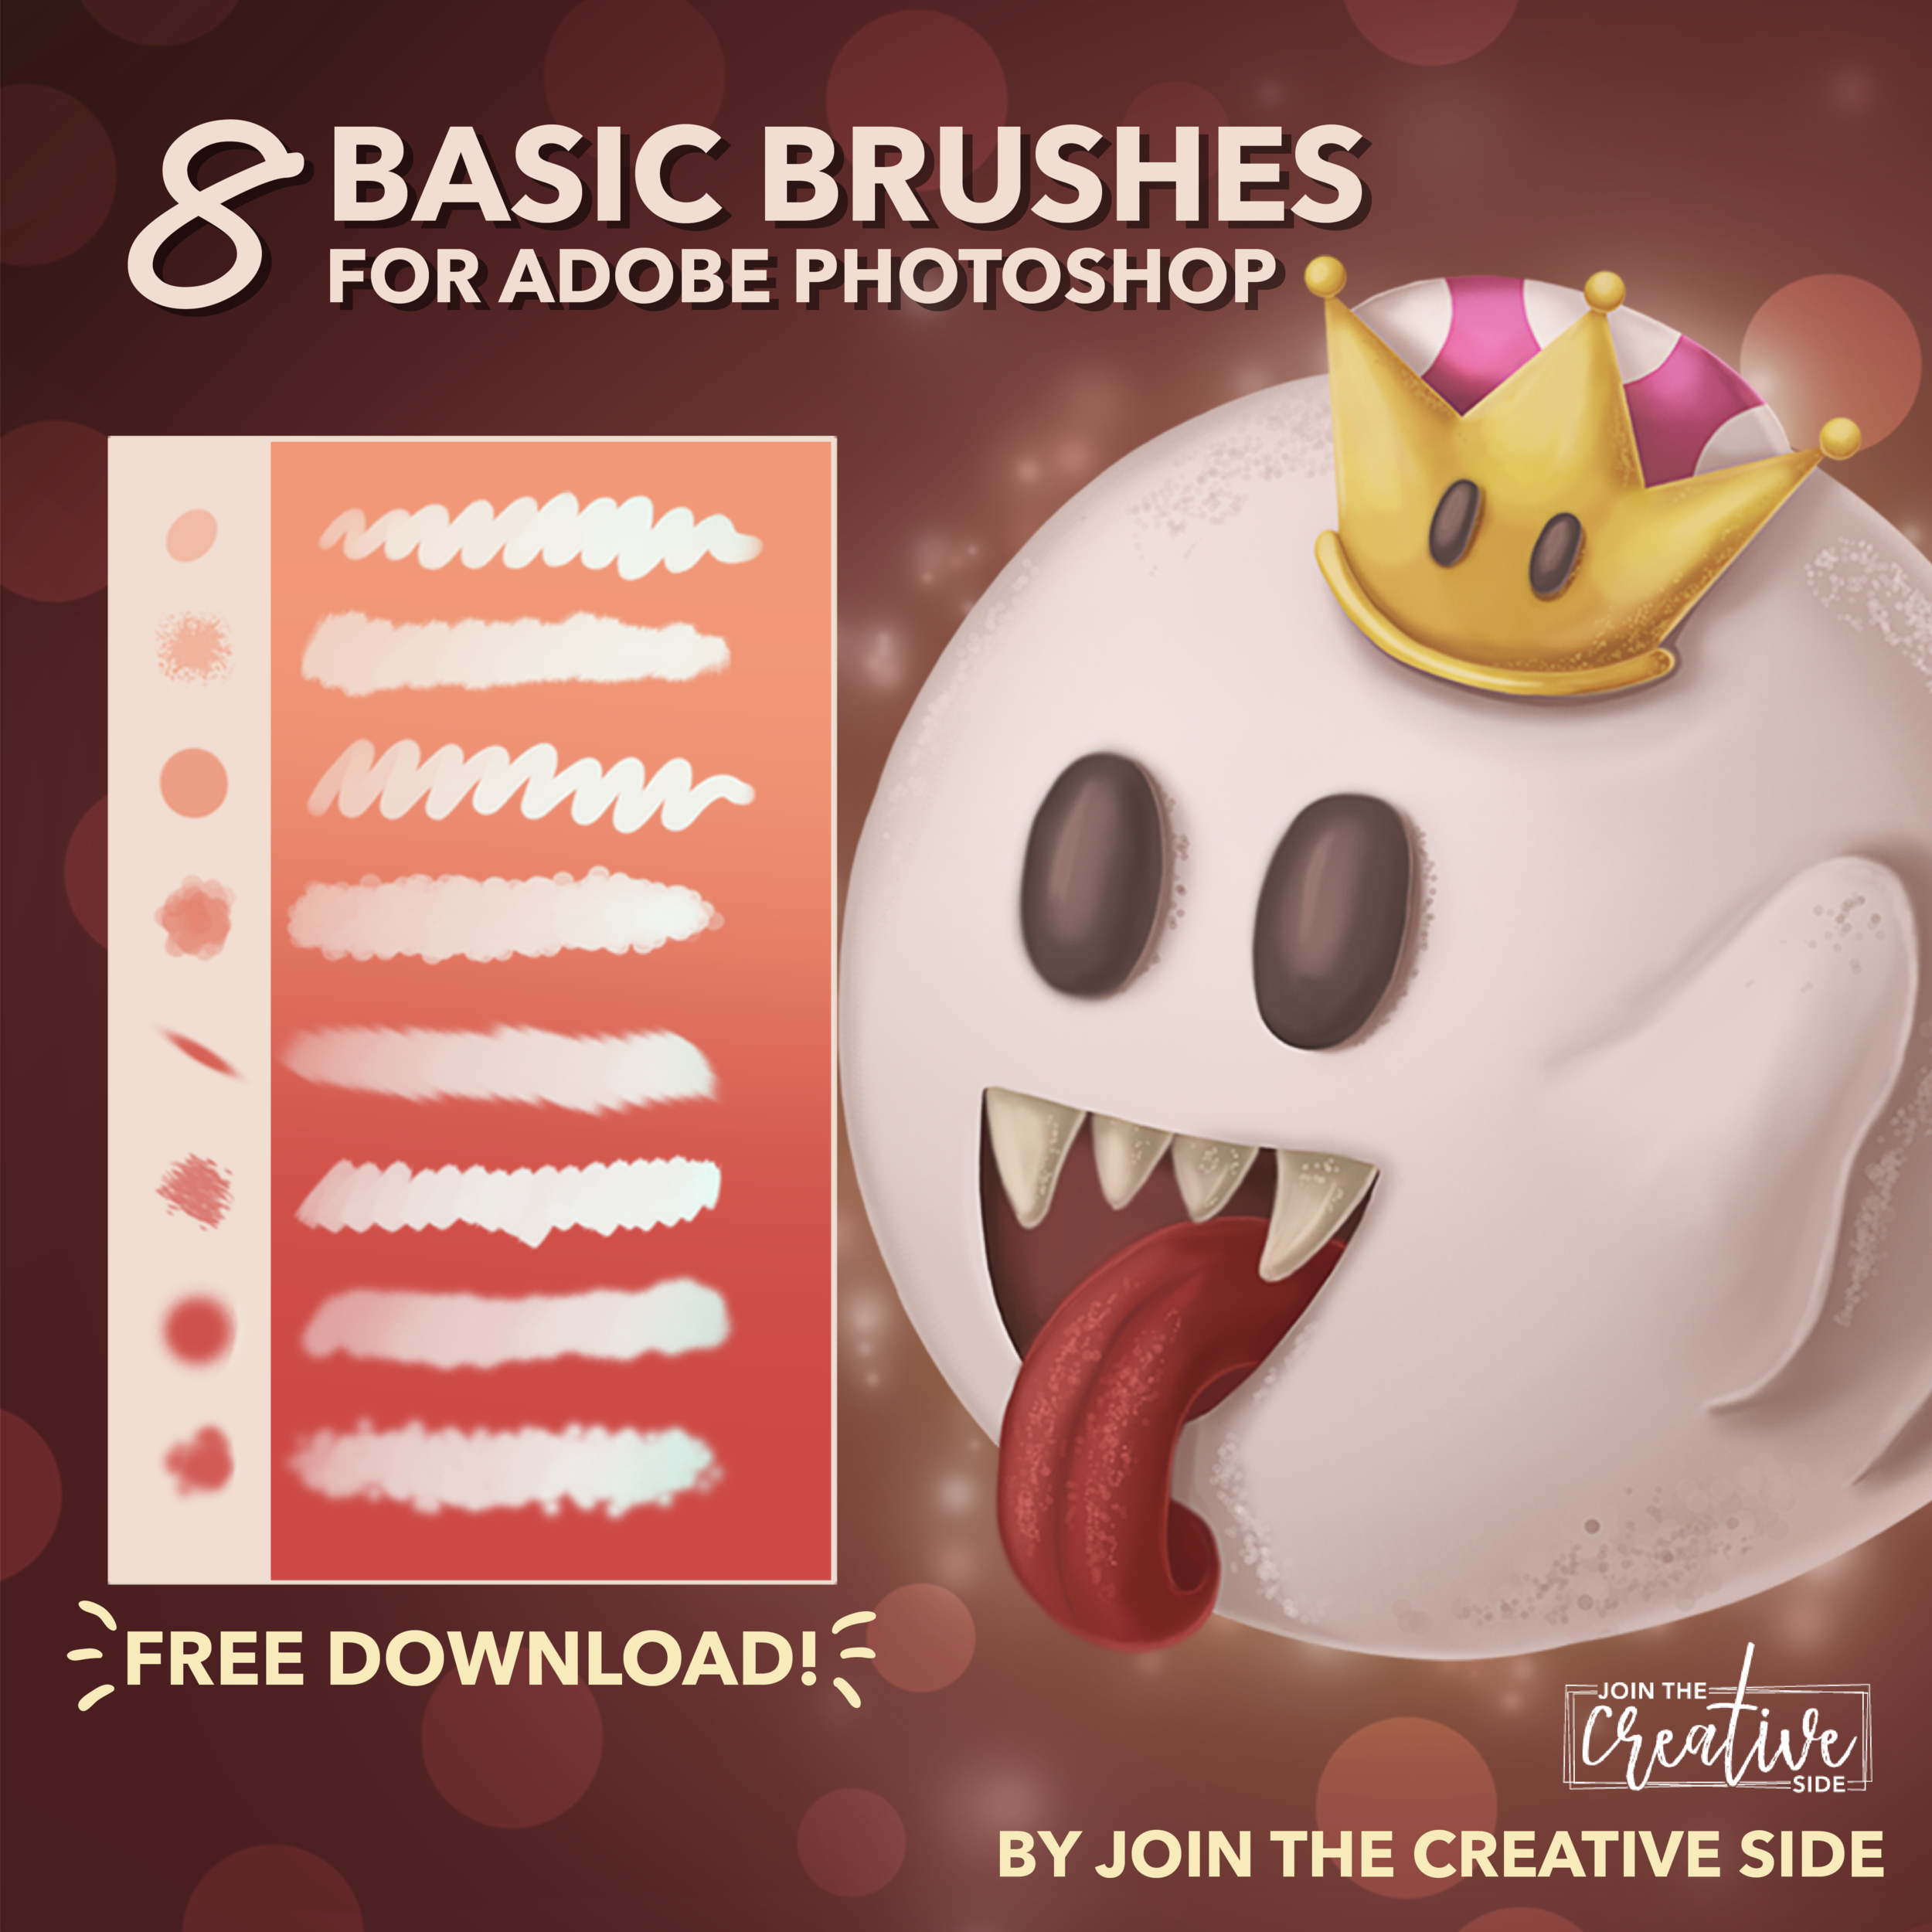 Join the creative side basic brushes graphic-01.png